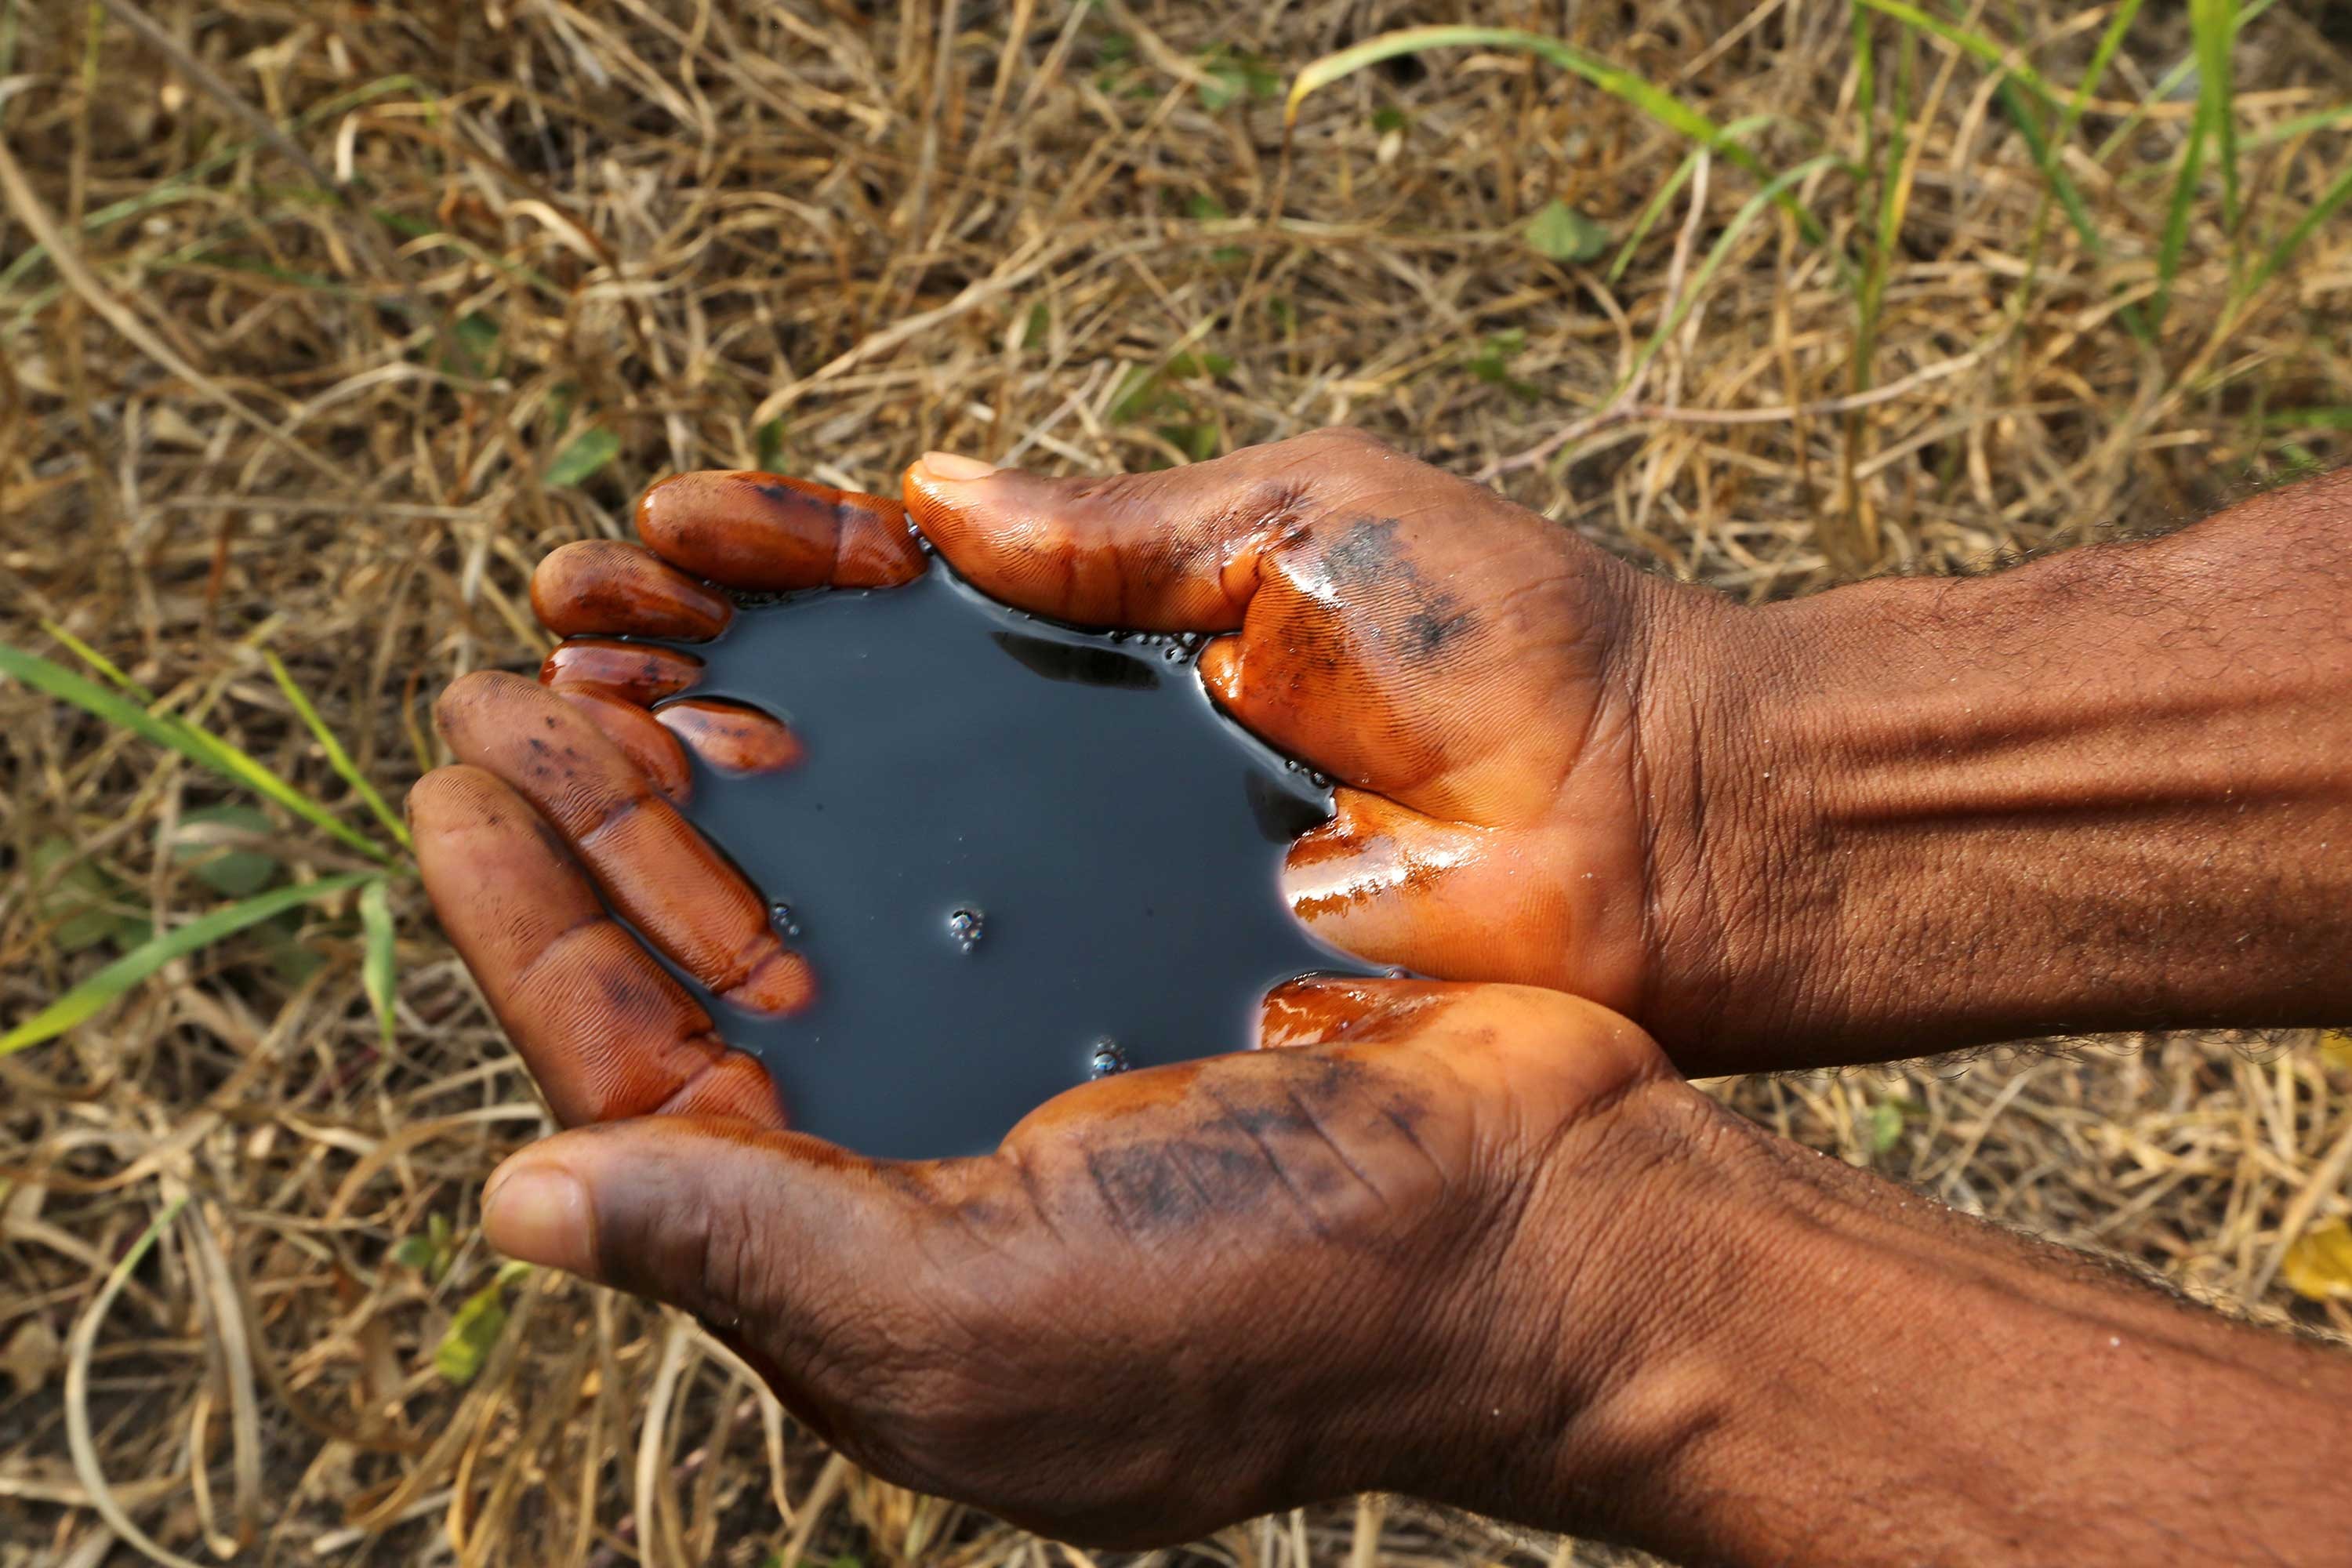 The hands of a Nigerian person cups a pool of black oil above a field.